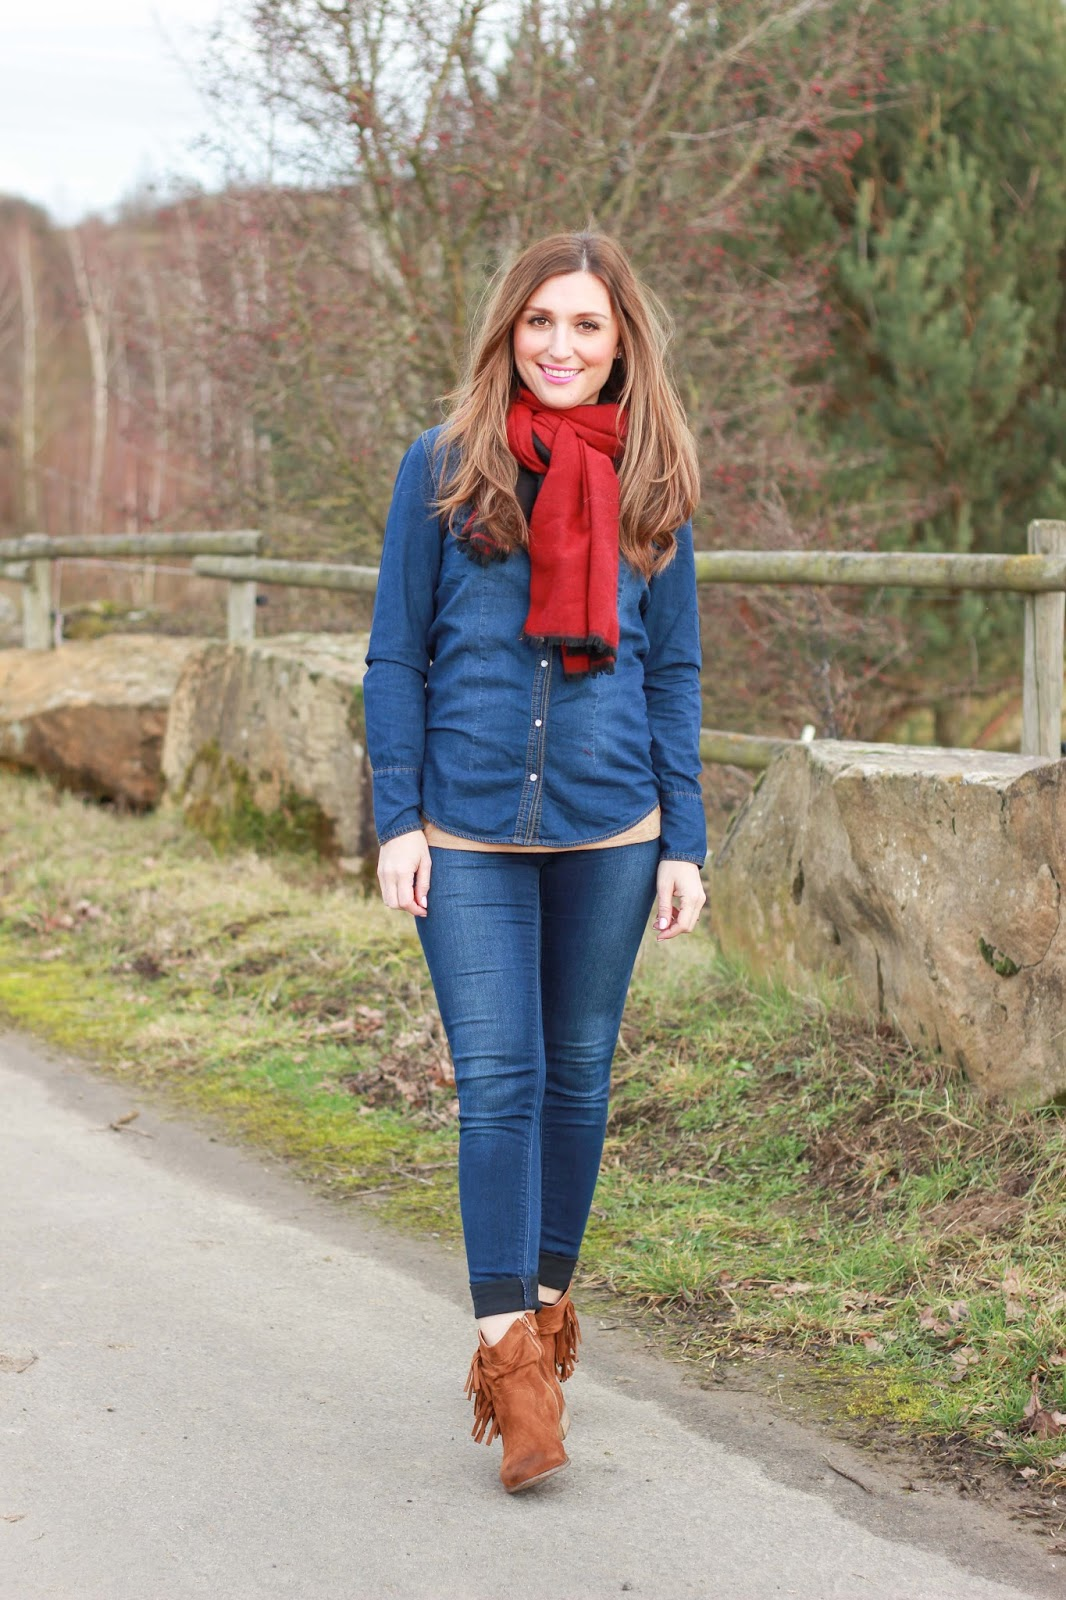 Fashionblogger aus Deutschland - Frankfurt Fashionblogger - DEnim Style - Booties - Braune Booties - Country Style - Country Look - Outfitinspiration Fashionblogger - Frankfurt Fashionblogger - Fasshionblogger aus Frankfurt